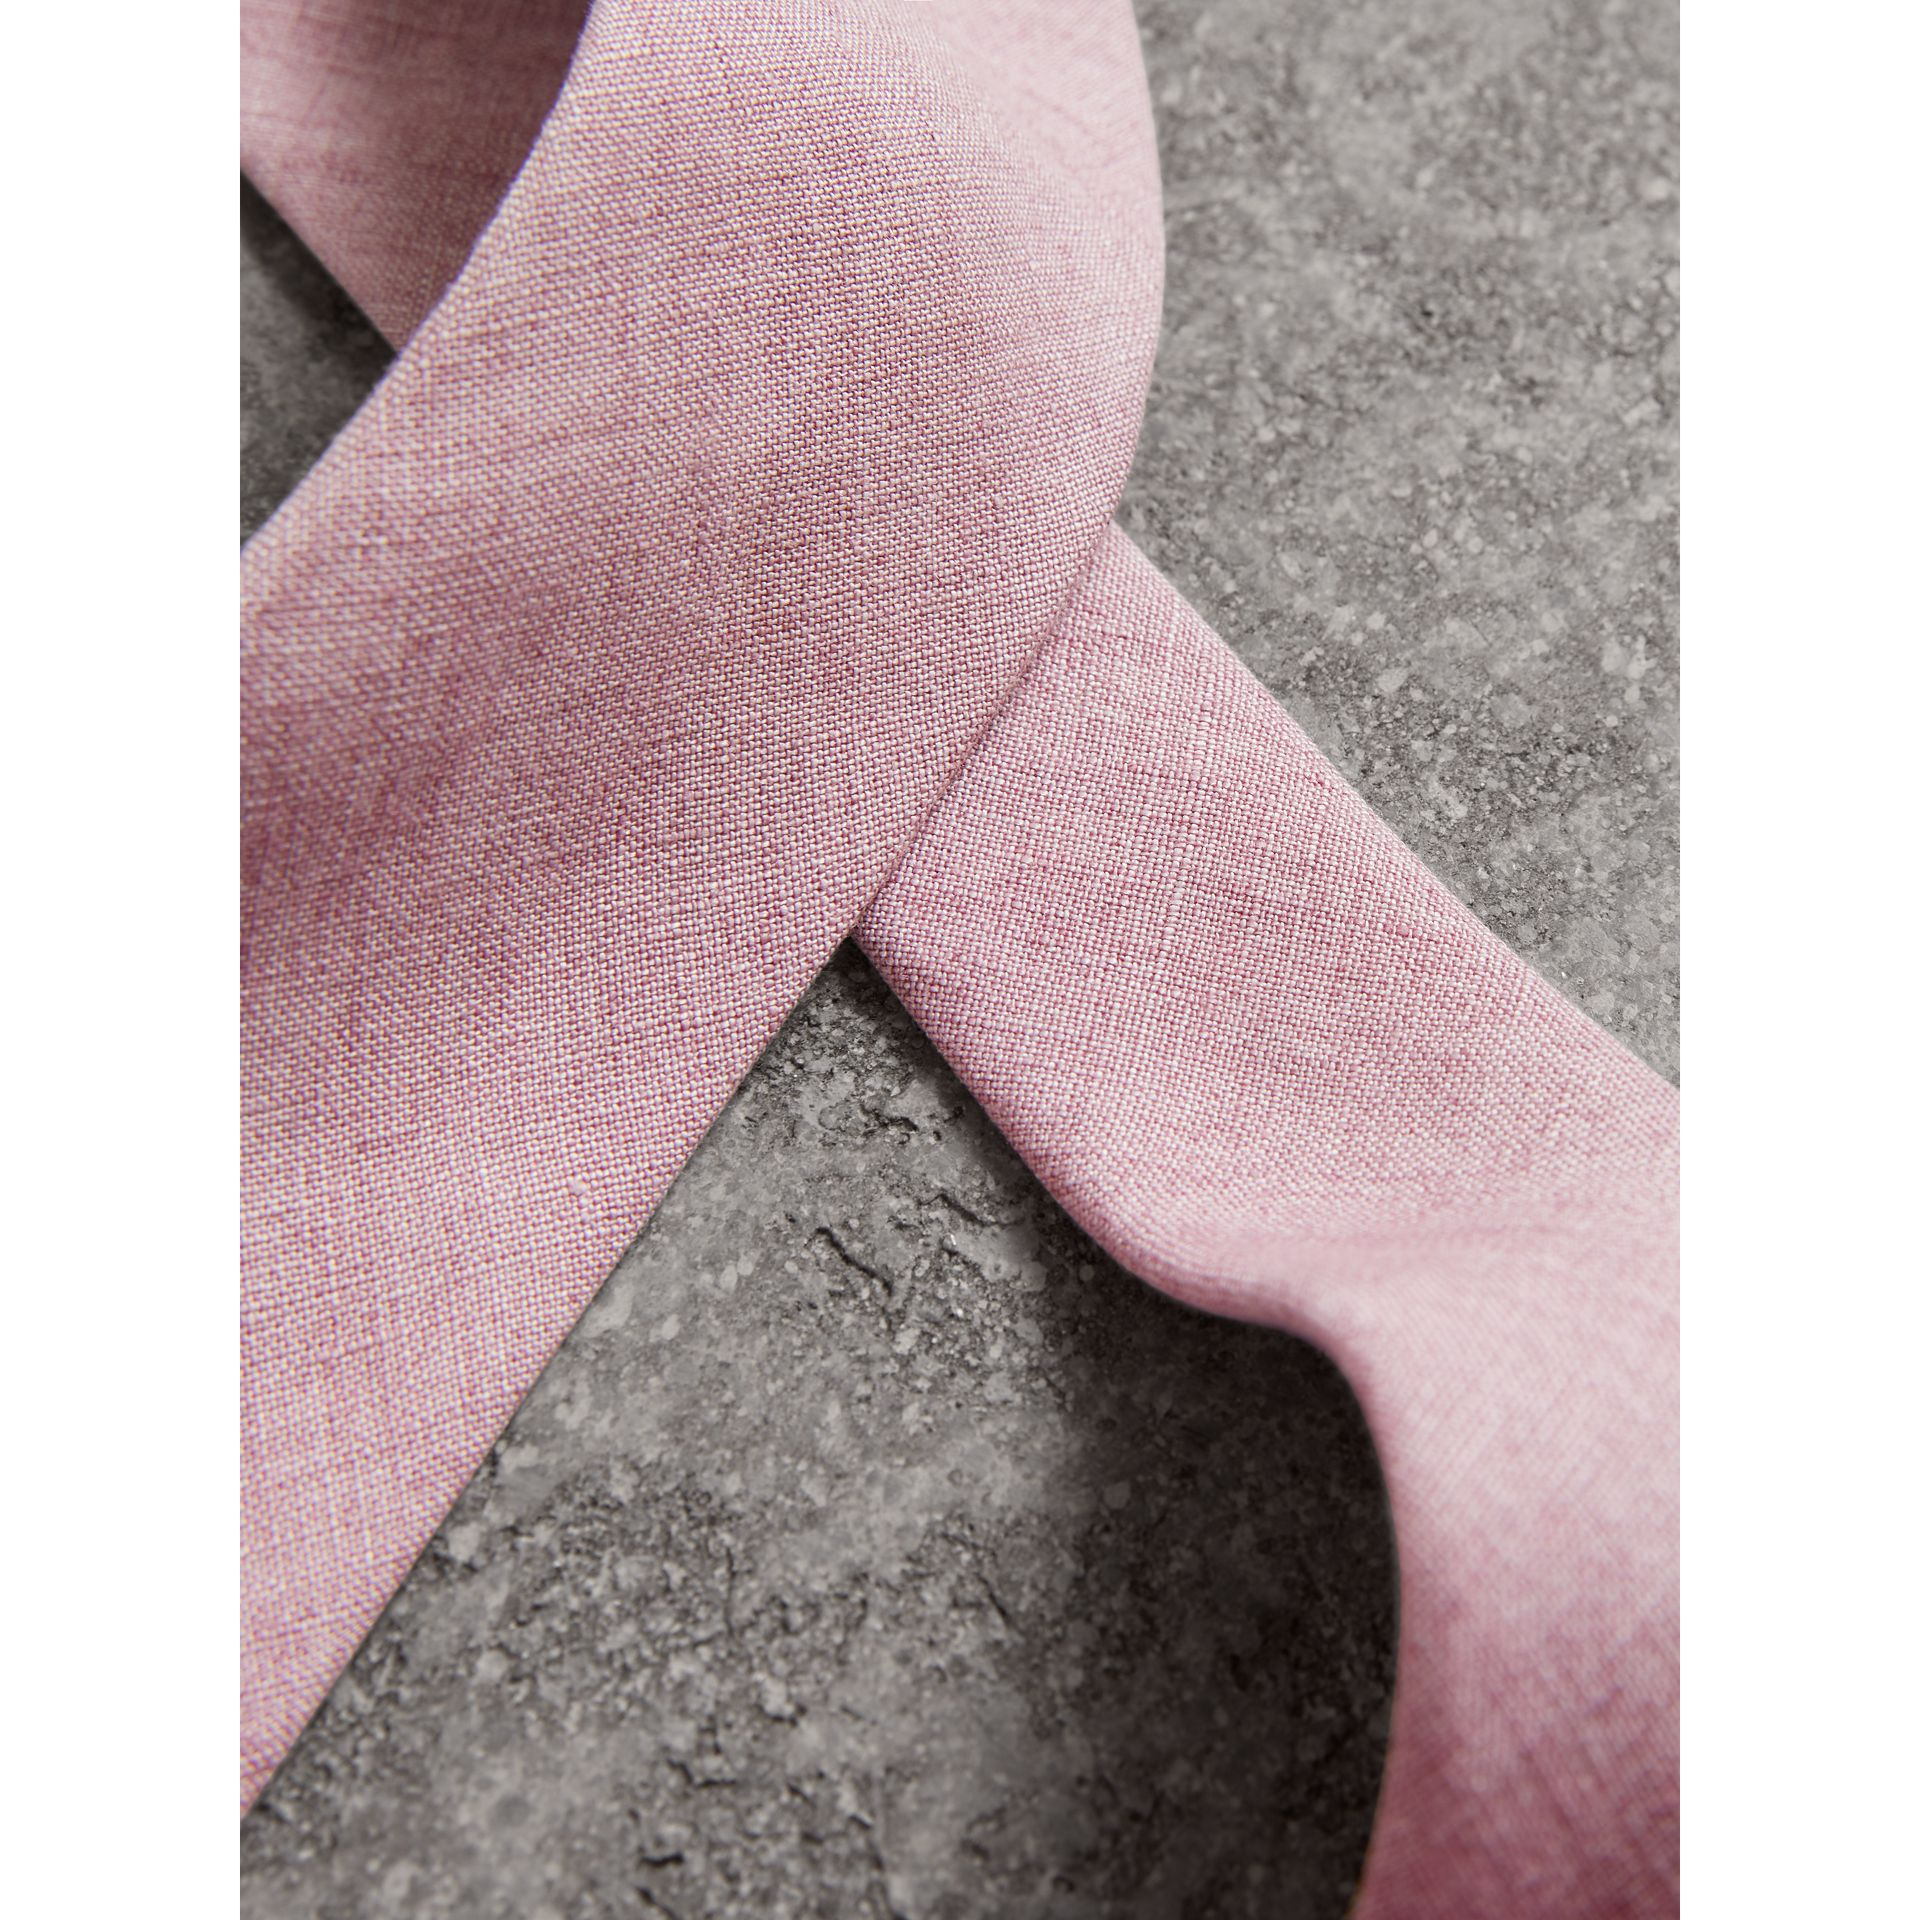 Slim Cut Linen Tie in Pink Heather - Men | Burberry - gallery image 1